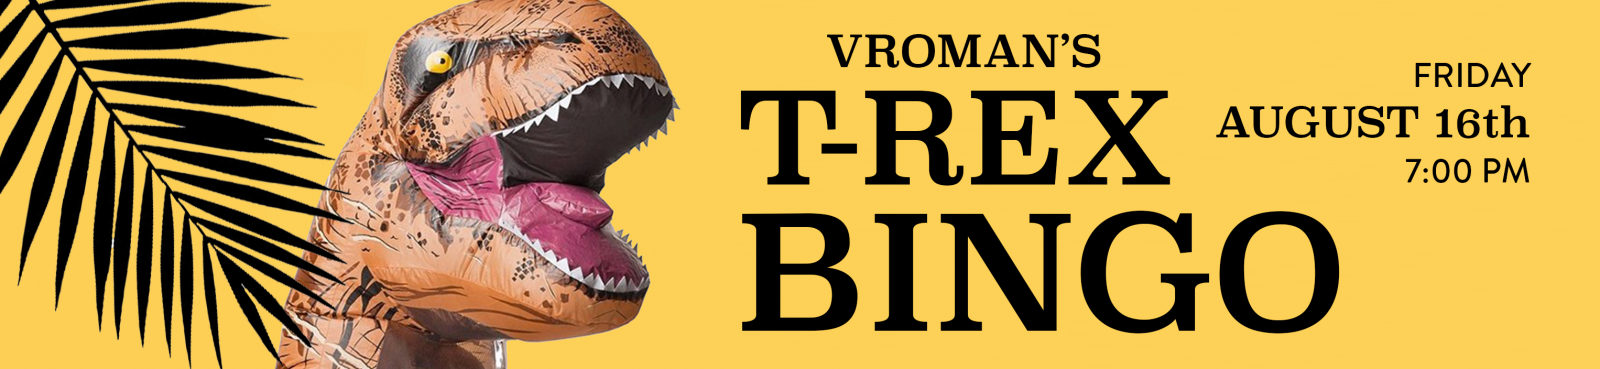 t-rex bingo Friday August 16th at 7pm